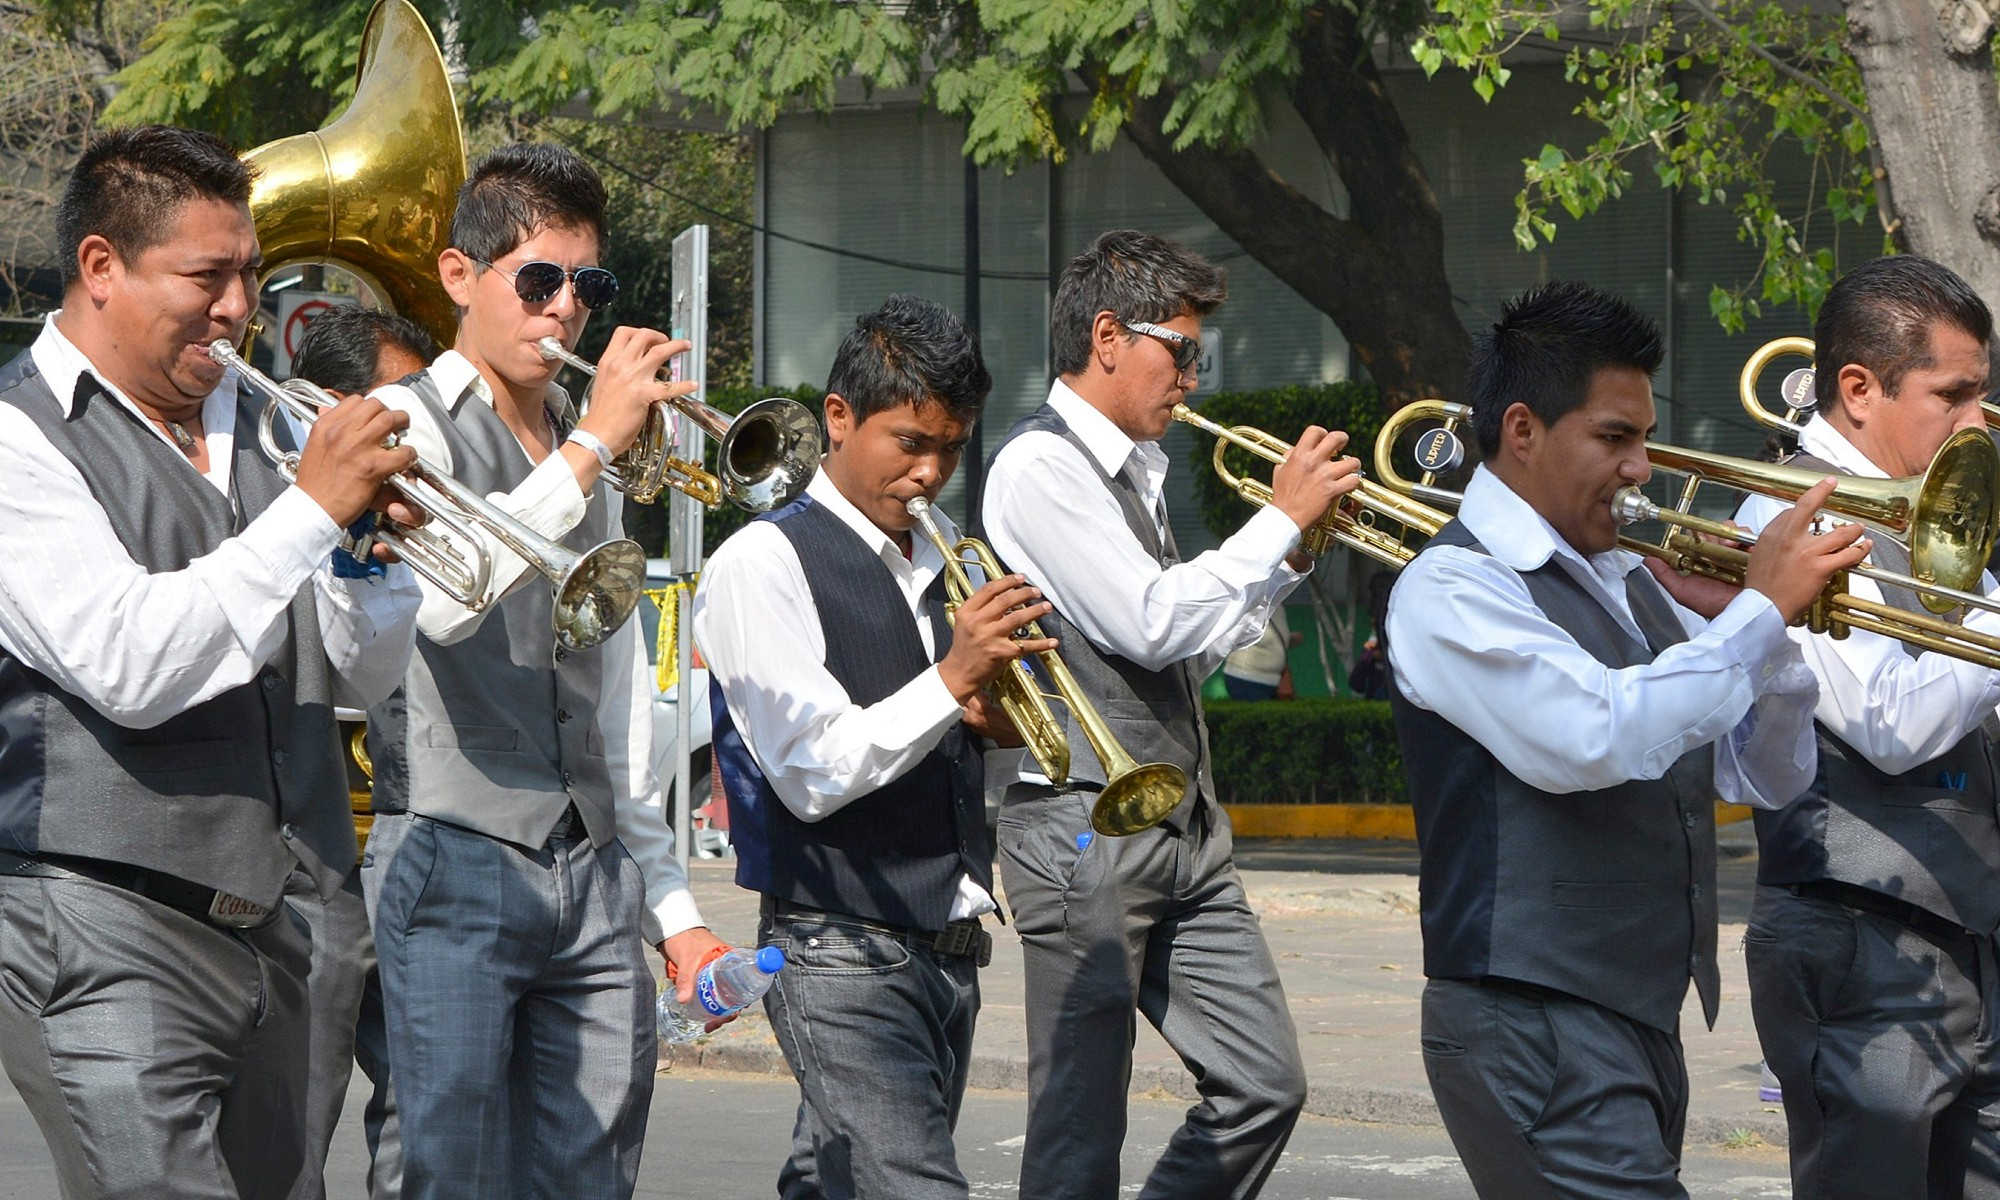 6 marching trumpet players in gray vests and slacks